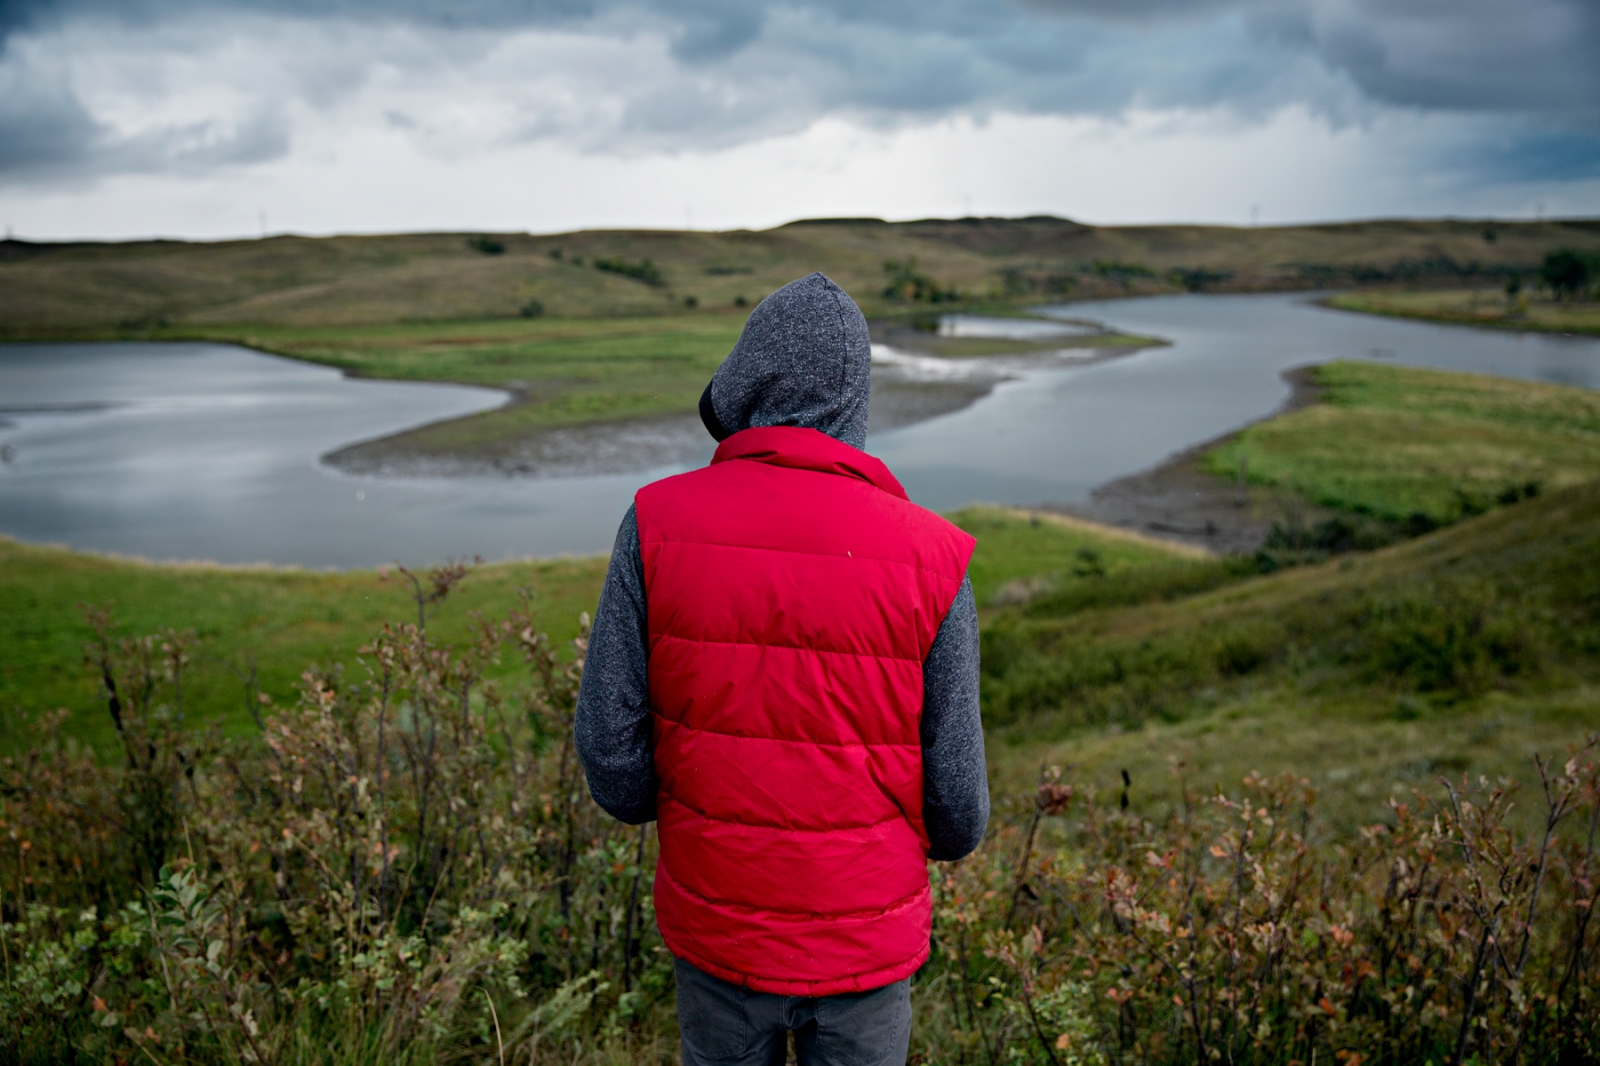 A man looks at the Missouri River where it meets with the Cannonball River. The pipeline threatens the safety of drinking water of the nearby Reservations.